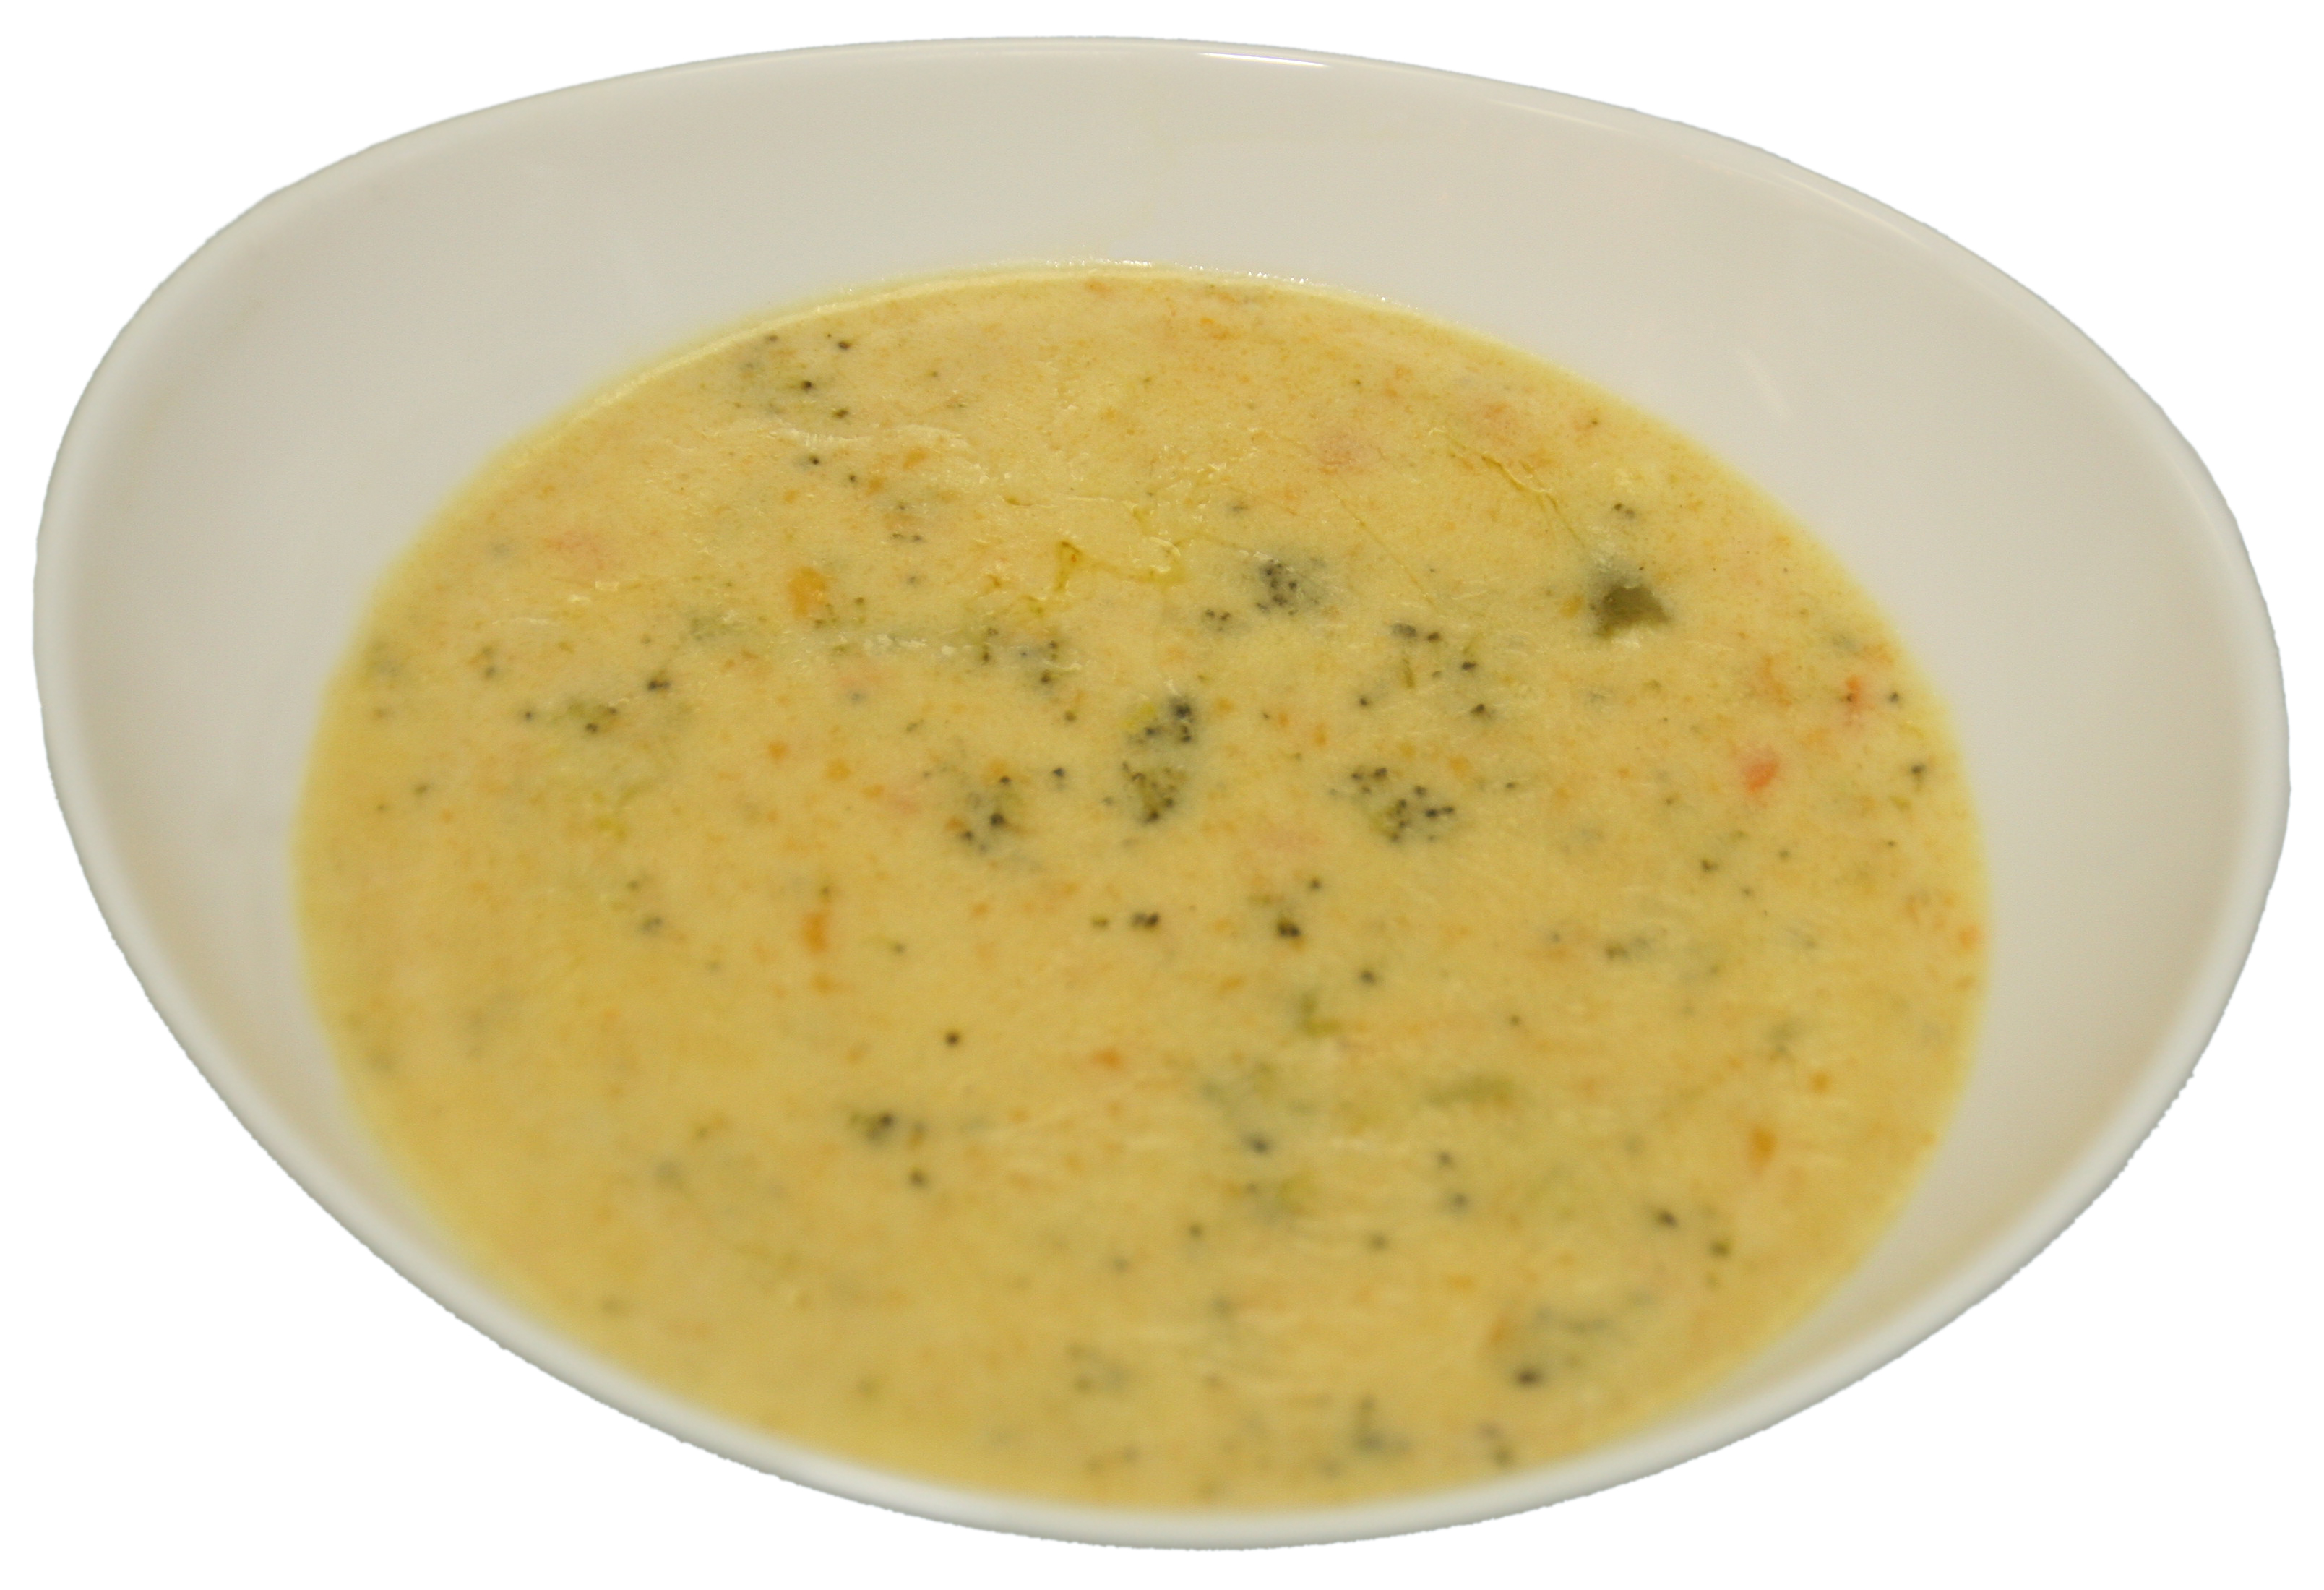 Large Homemade Cream of Broccoli & Cheddar Cheese Soup Image